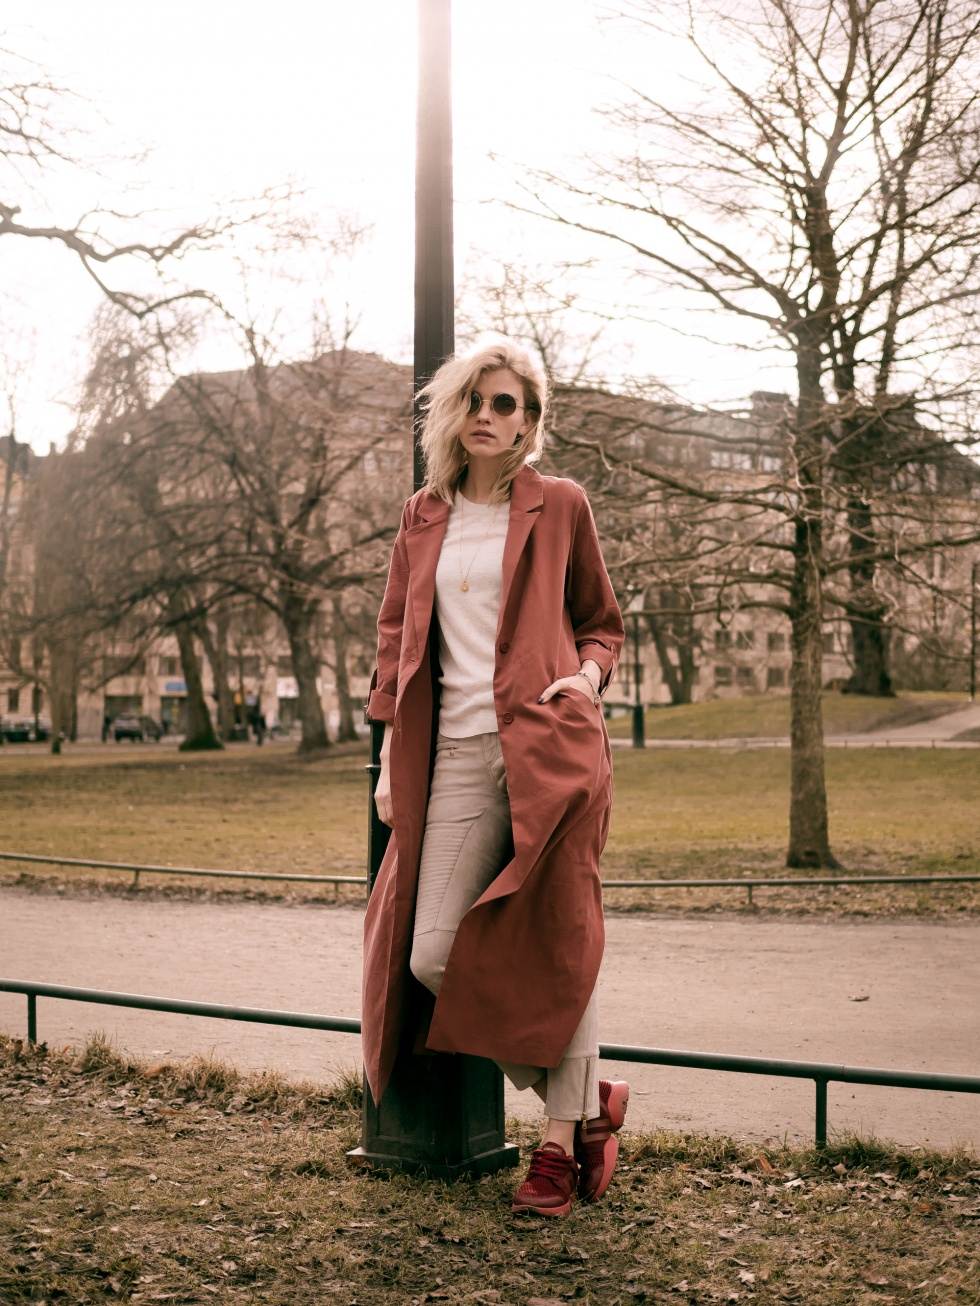 If you're looking for an authentic spring style, try embracing the Terracotta Rust trend! Elsa Ekman shows us how effective this understated colour can be, creating a gorgeous look in this rust maxi coat worn with matching sneakers. Trench: Monki, T-Shirt: Weekday, Trousers: Hunkydory, Shoes: DKNY.